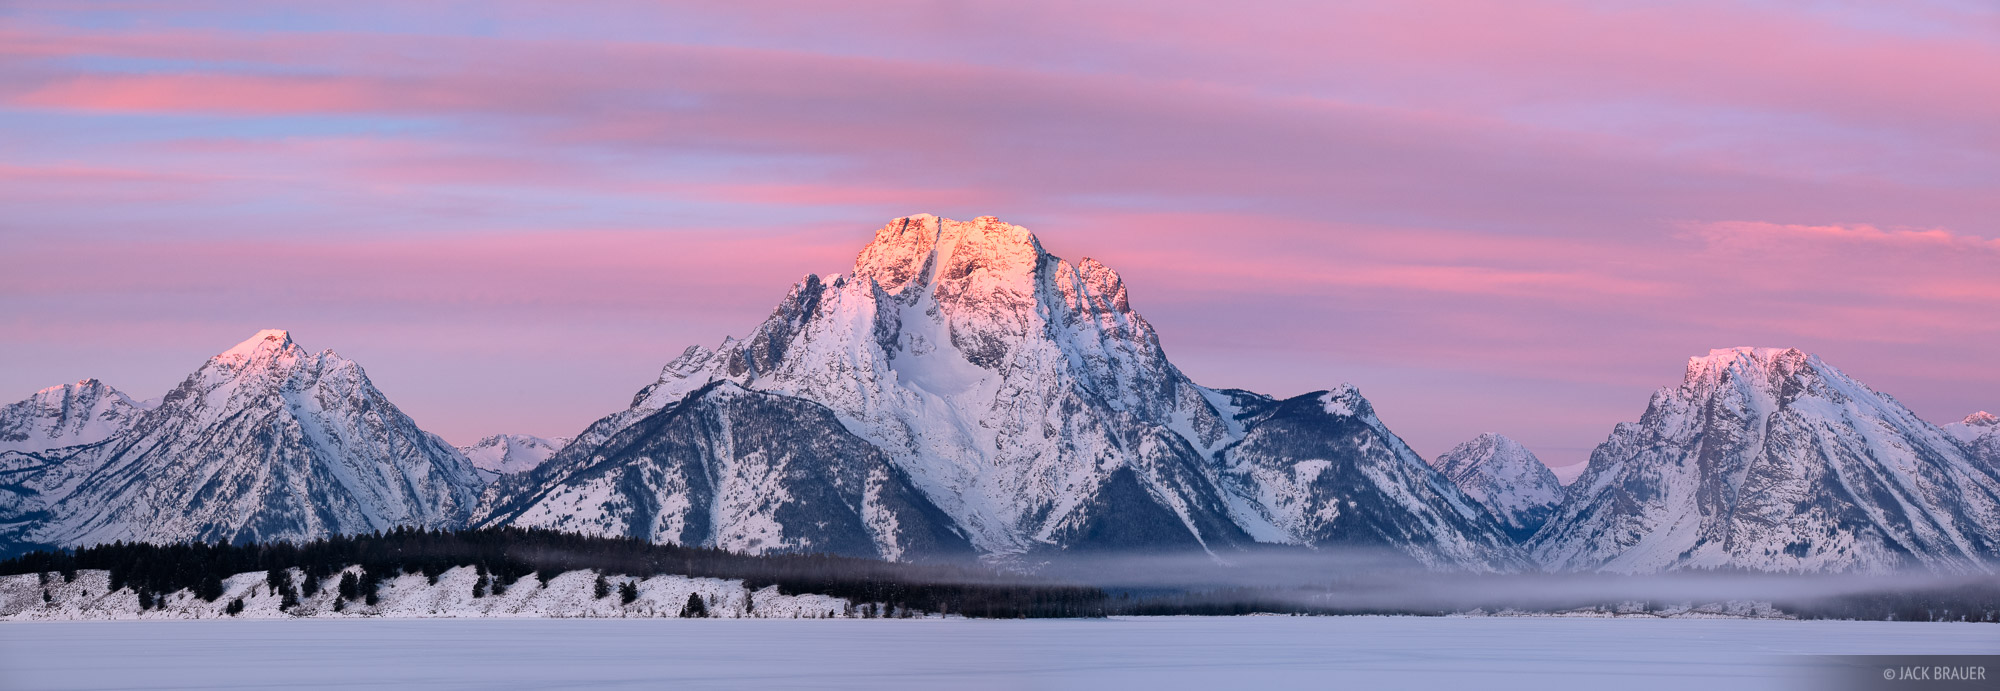 Mt. Moran, Tetons, Wyoming, sunrise, Jackson Lake, winter, panorama, photo